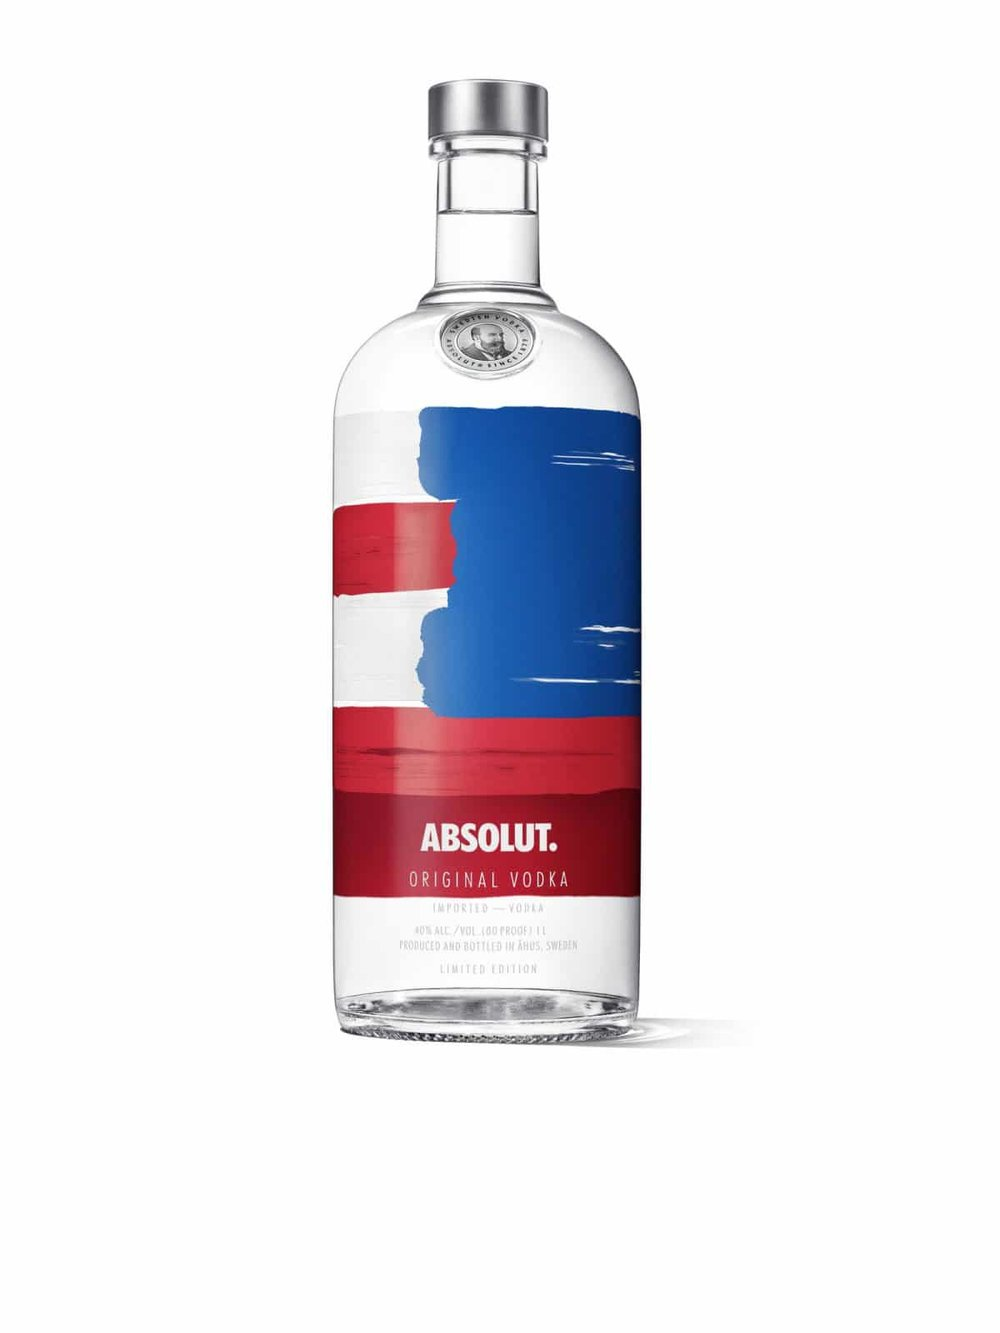 Absolut_America_Bottle_Image.jpg